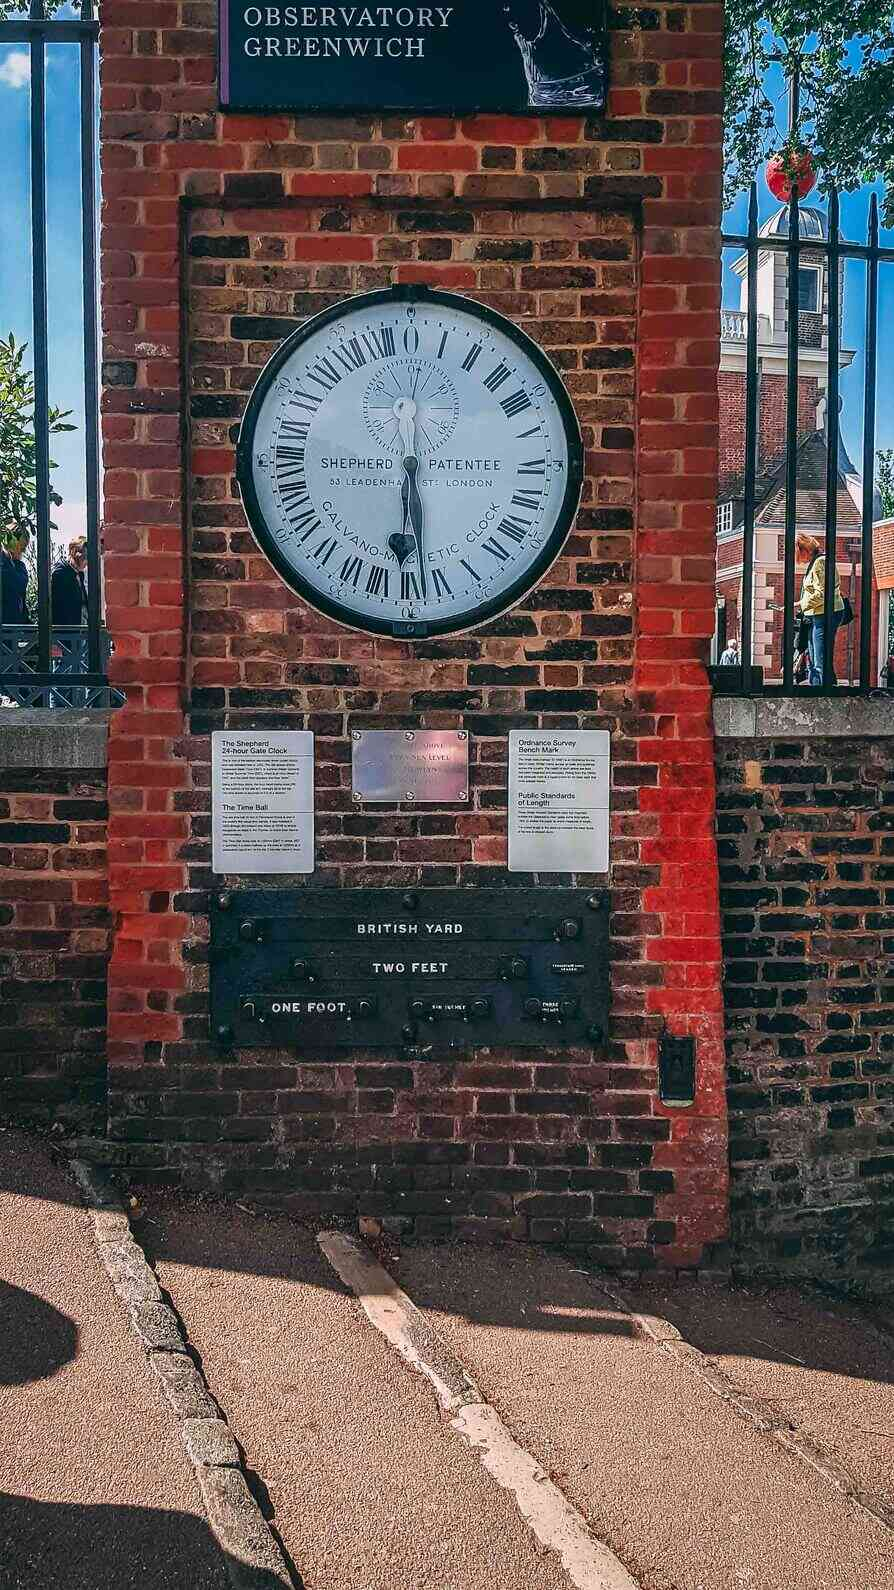 At the top discover Prime Meridian Line and  Royal Observatory Greenwich.